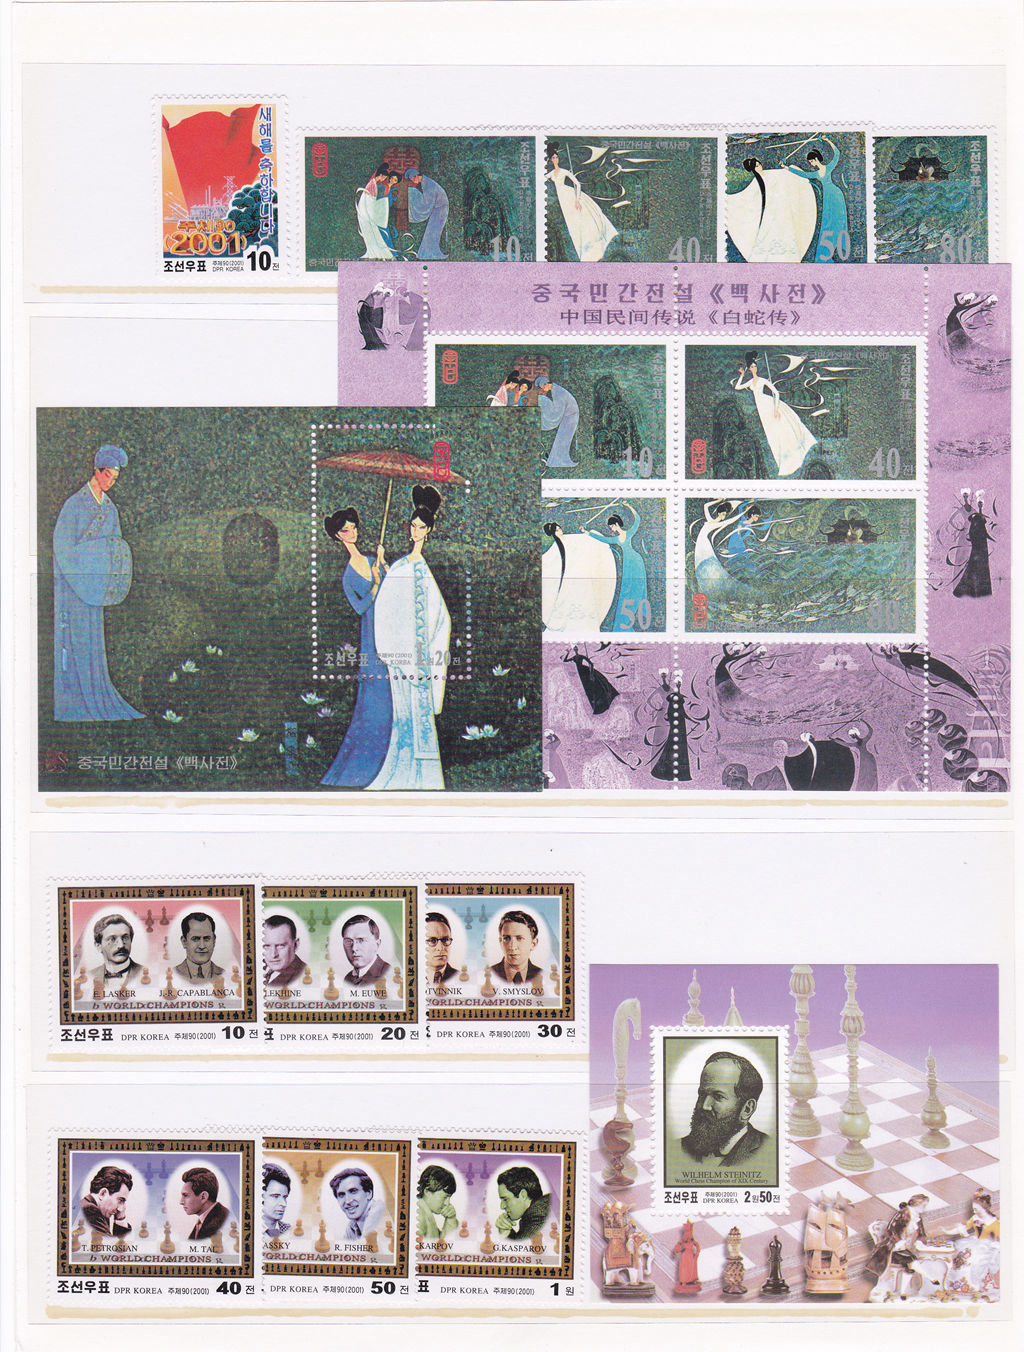 L4038, Korea 2001 Year Stamps (42 pcs Stamps and 23 pcs SS/MS), MNH